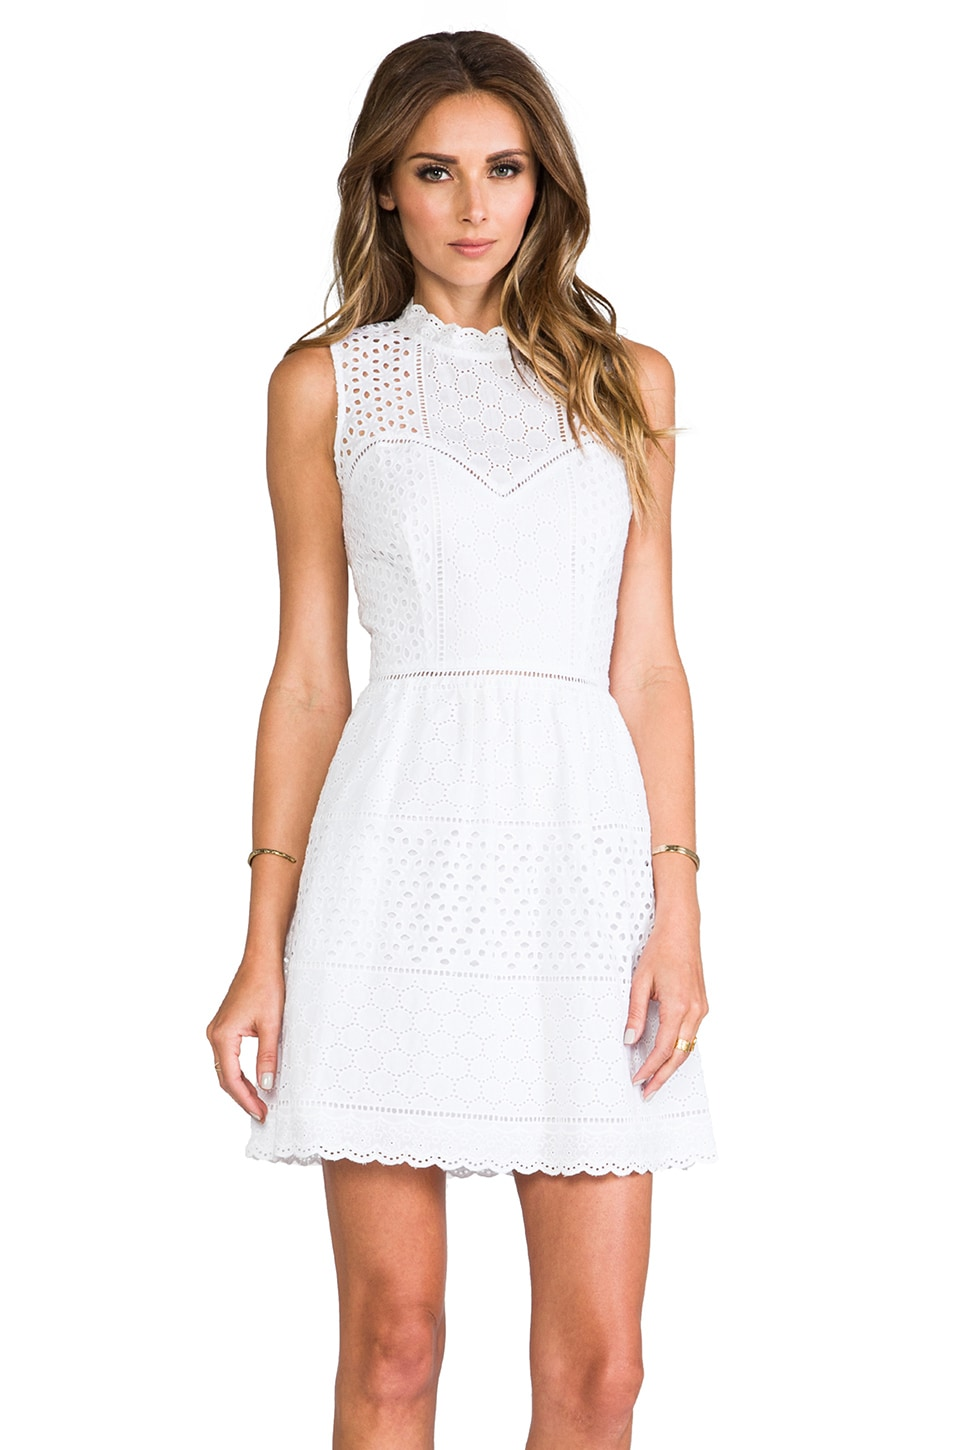 Dolce Vita Benicia Dress in White